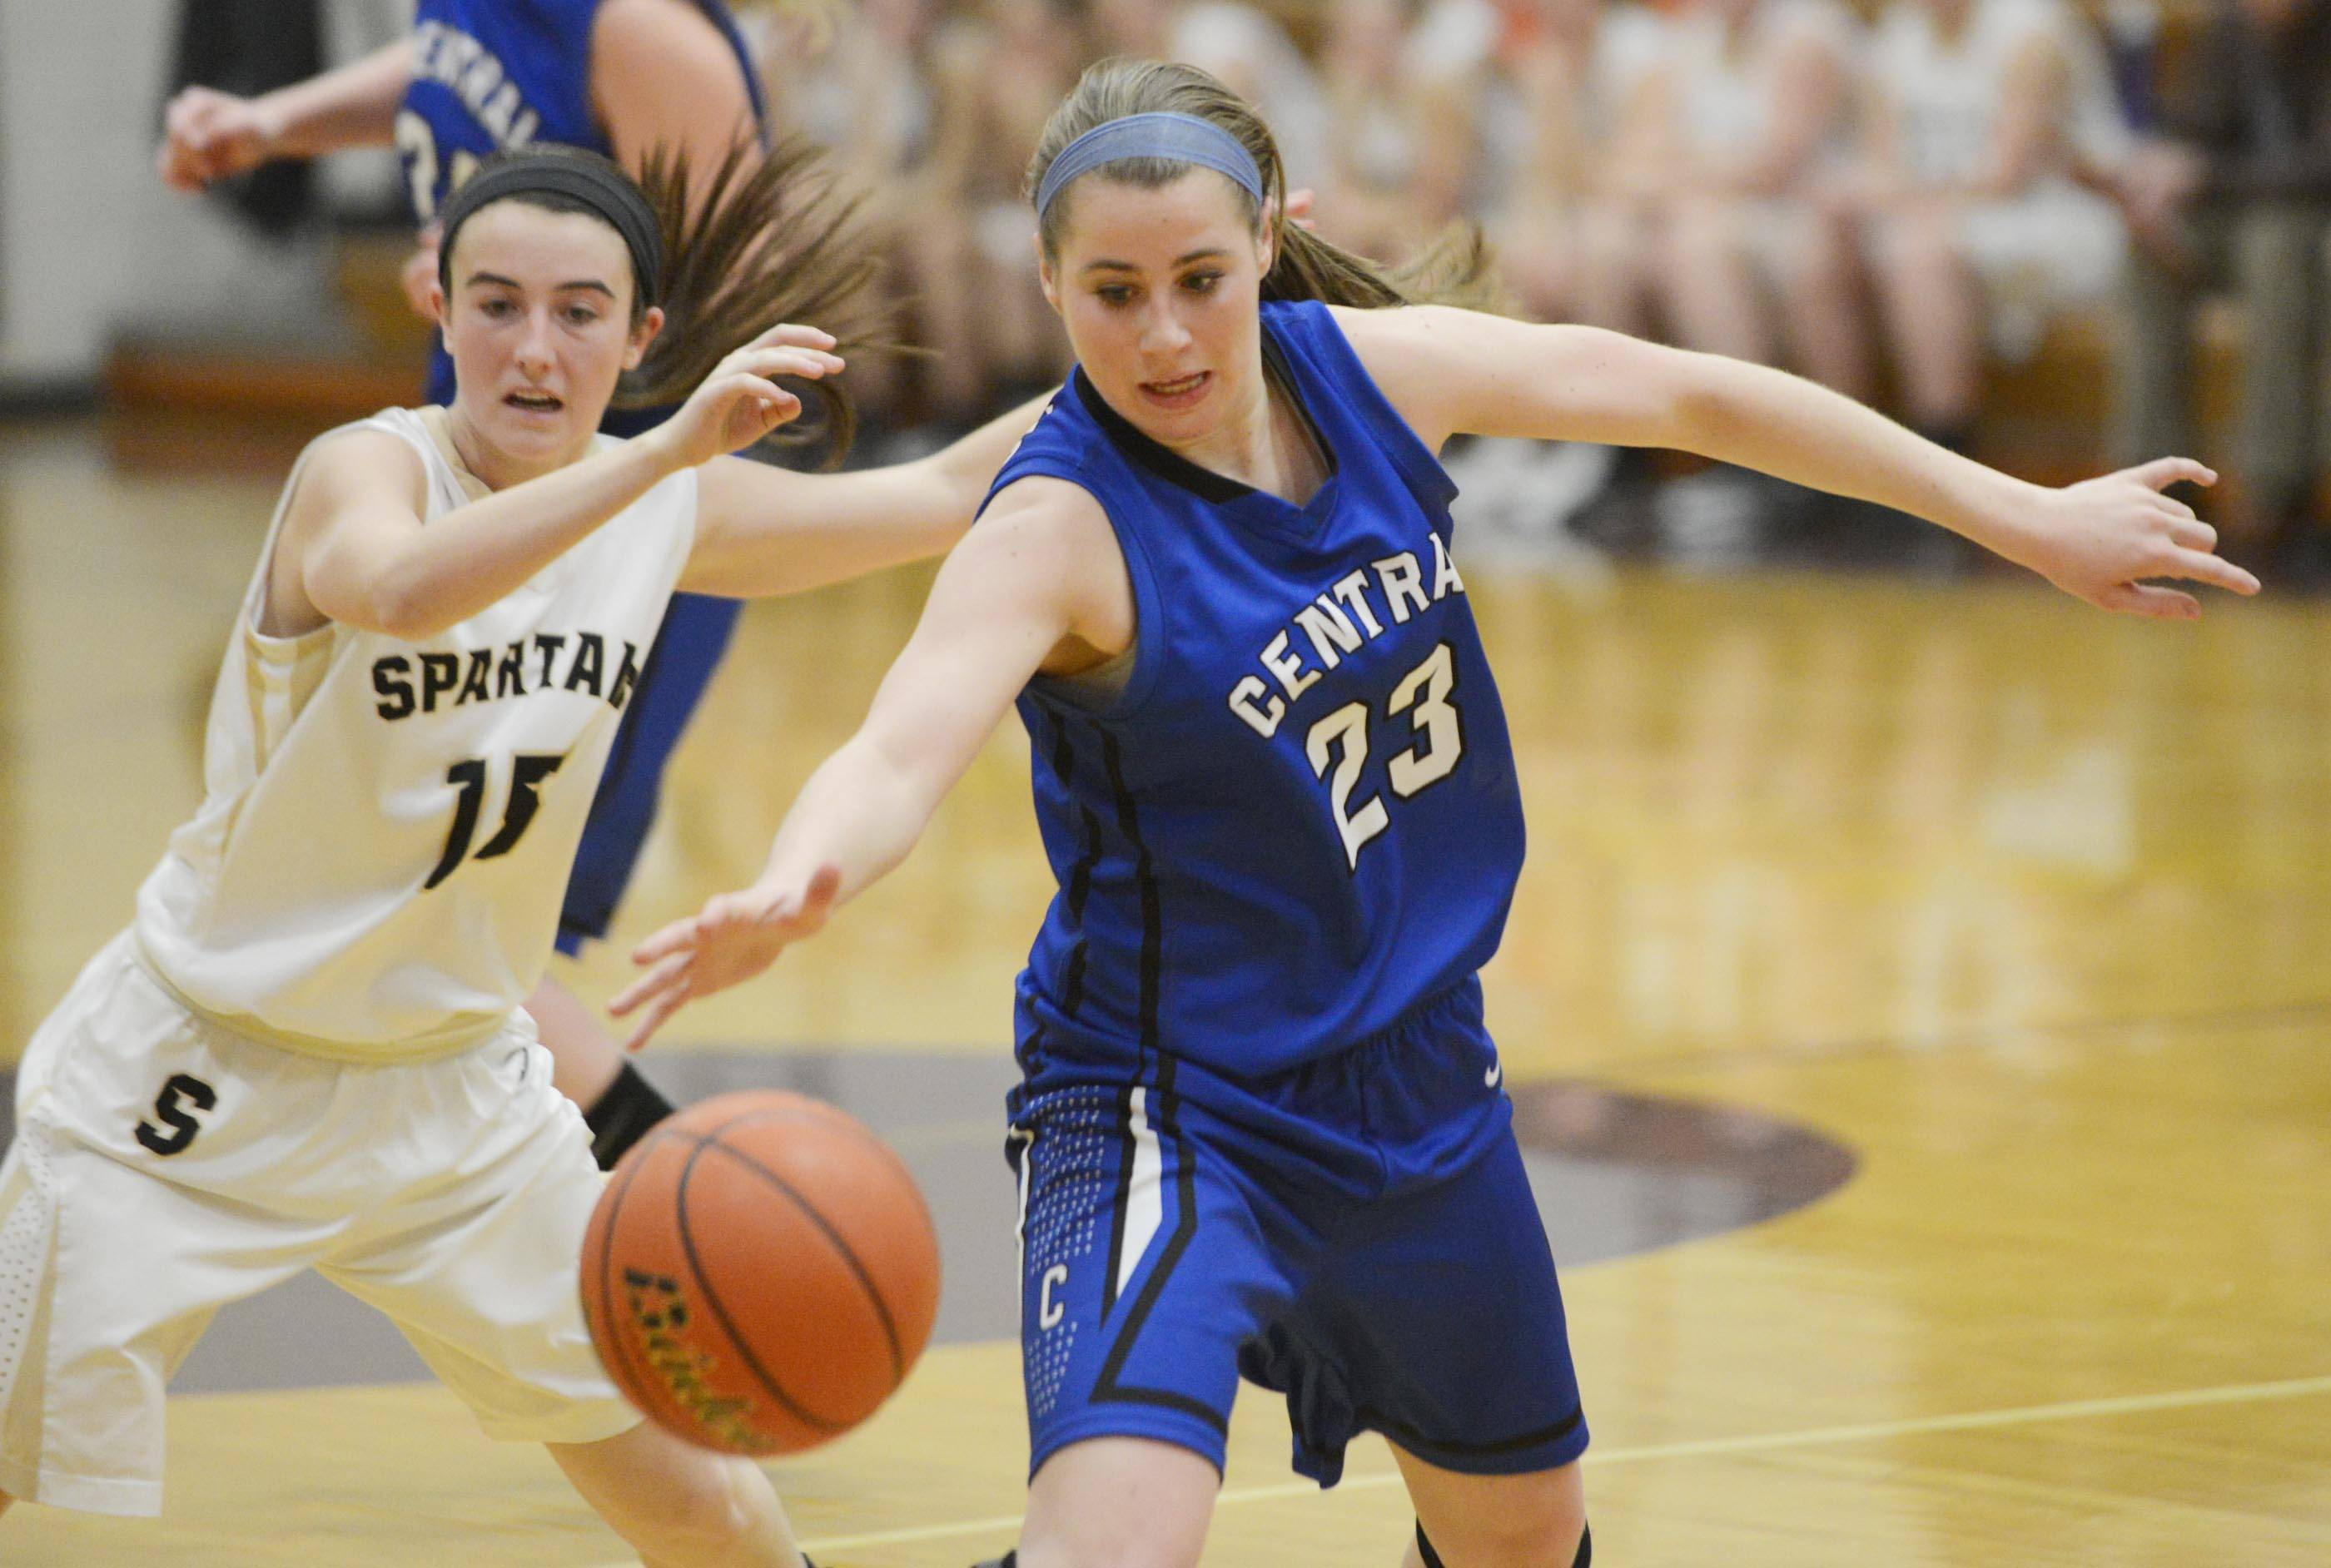 Burlington Central's Aly DeTamble steals a pass intended for Sycamore's Lauren Goff .